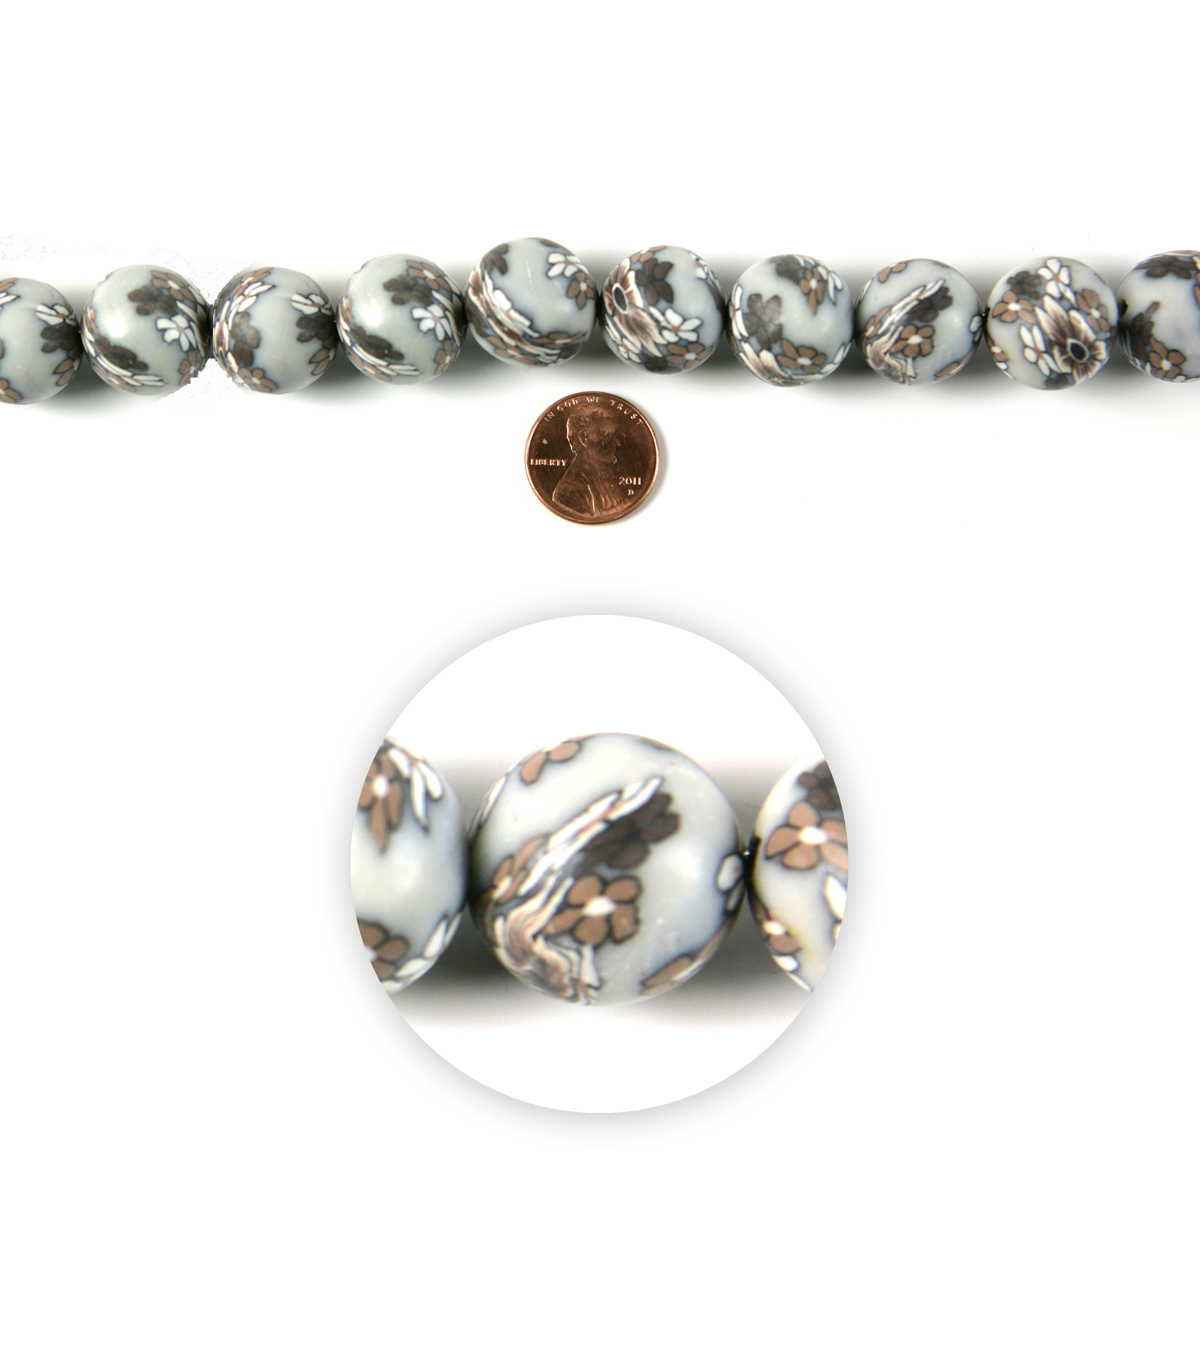 Blue Moon Strung Polymer Clay Beads,Round,Grey w/White & Beige,Floral